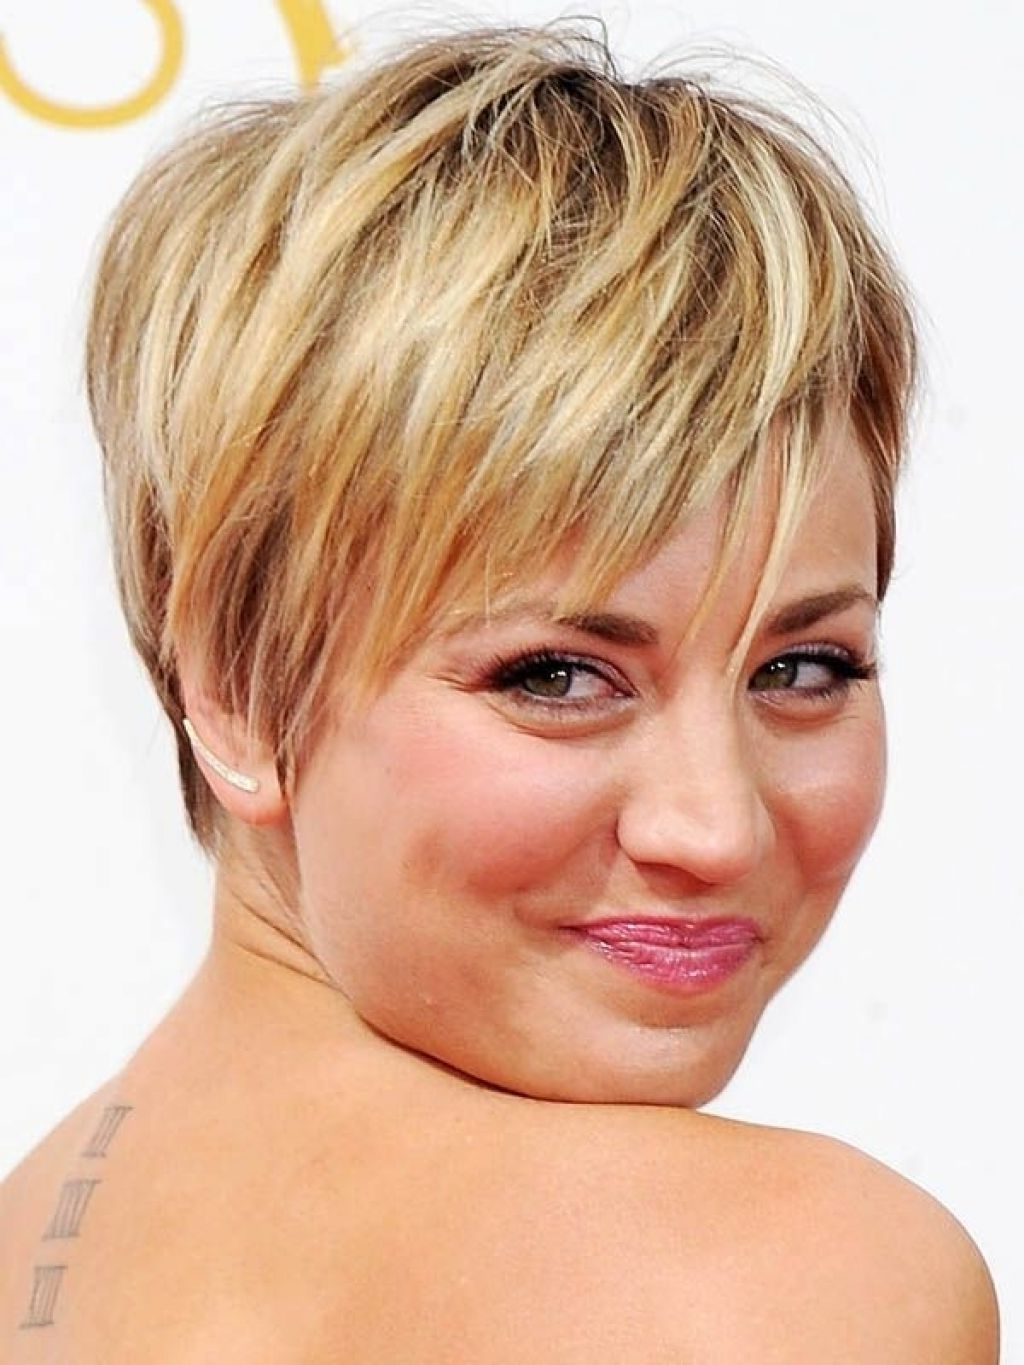 Hairstyles For Round Chubby Face Shapes Within Short Haircuts For Chubby Face (View 21 of 25)